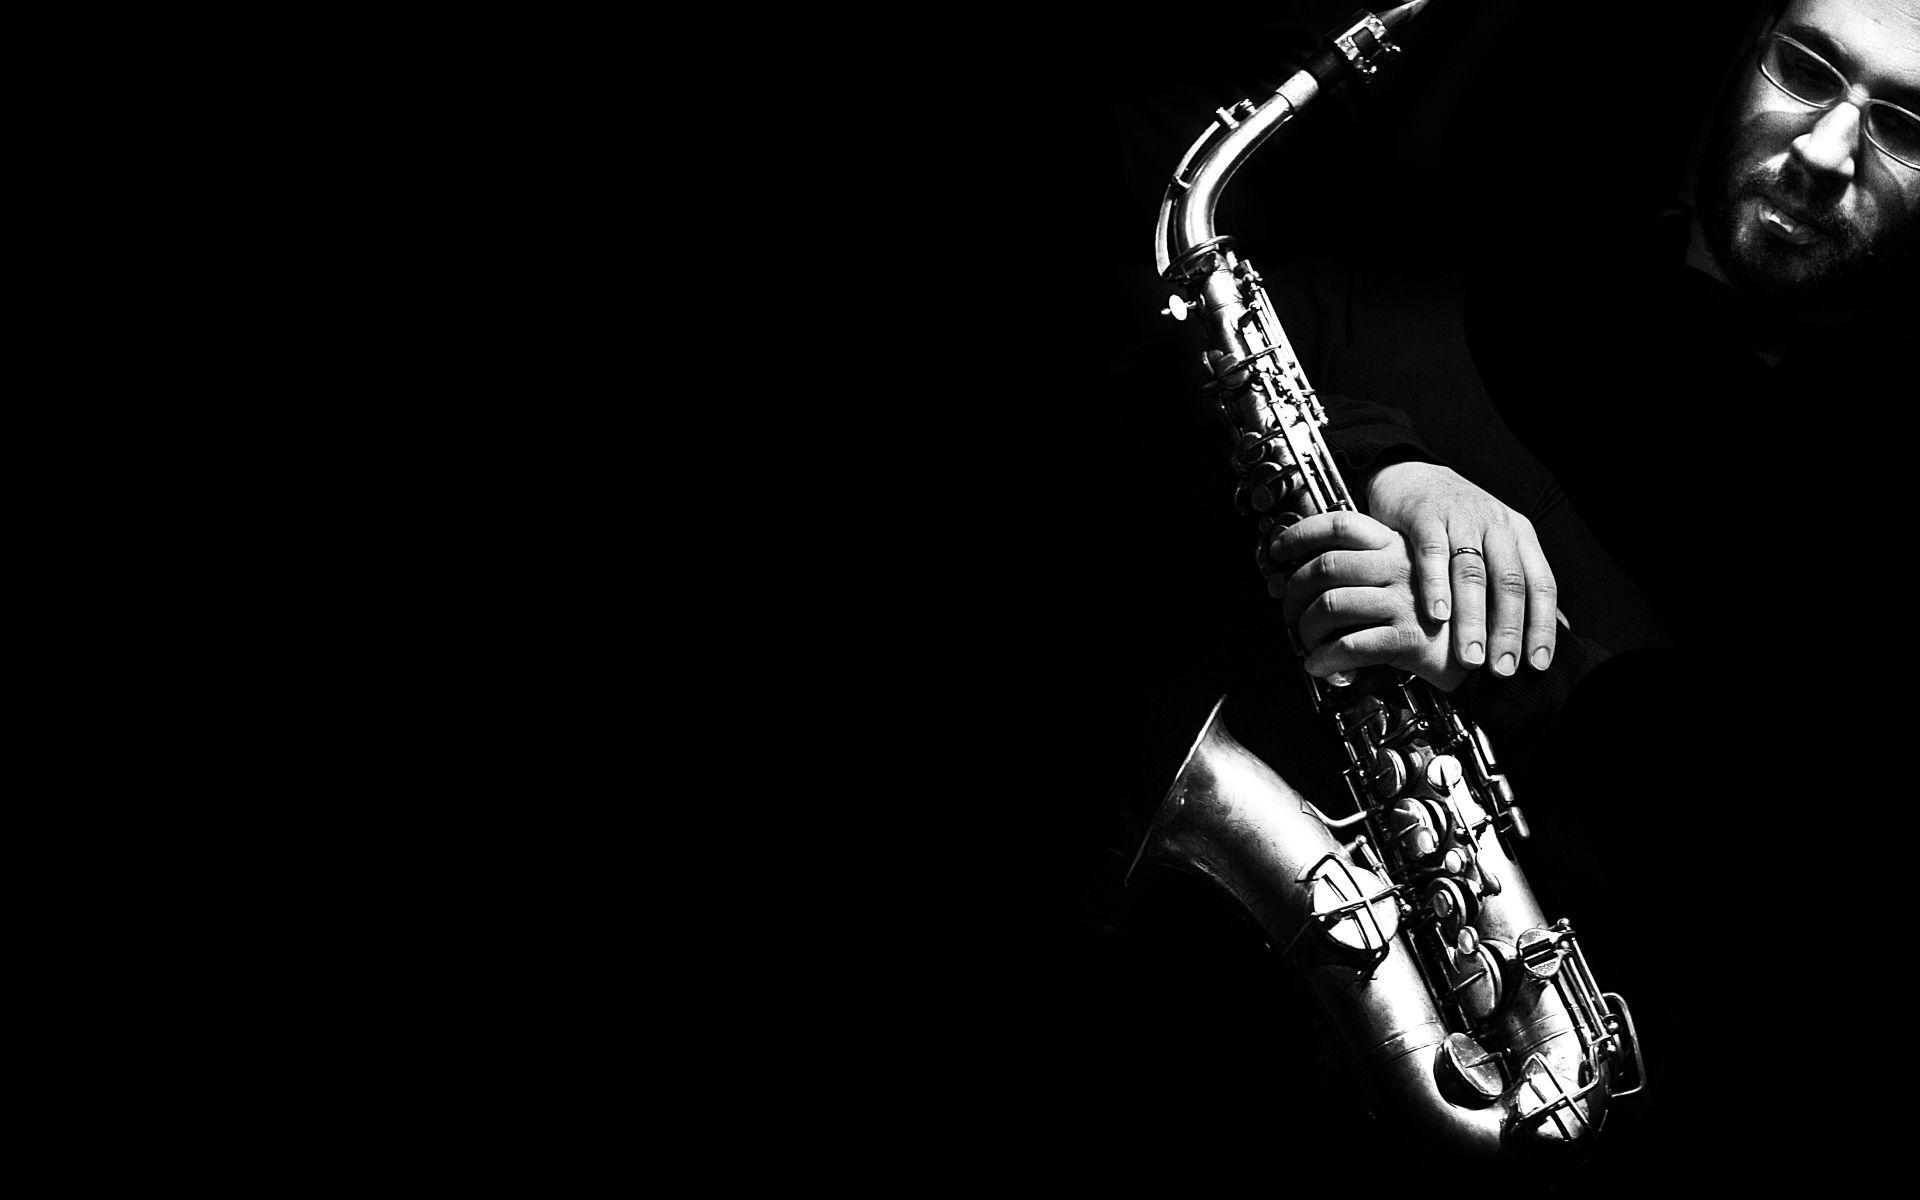 Saxophone Wallpaper Widescreen Desktop Image 6 #11693 Wallpaper ...